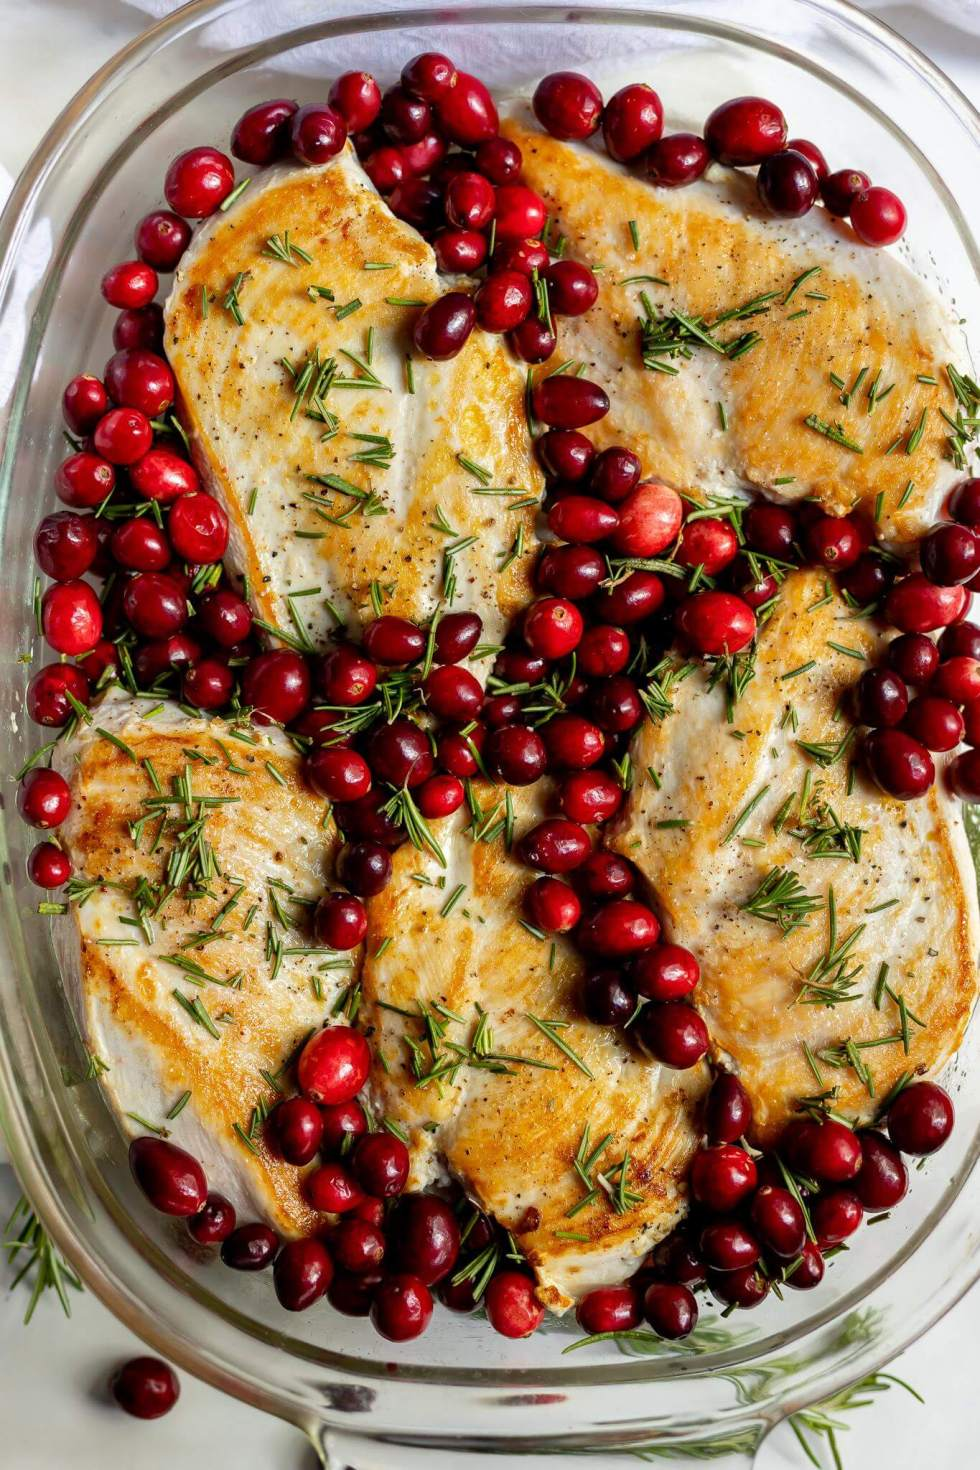 rosemary chicken breasts and fresh red cranberries in glass baking dish